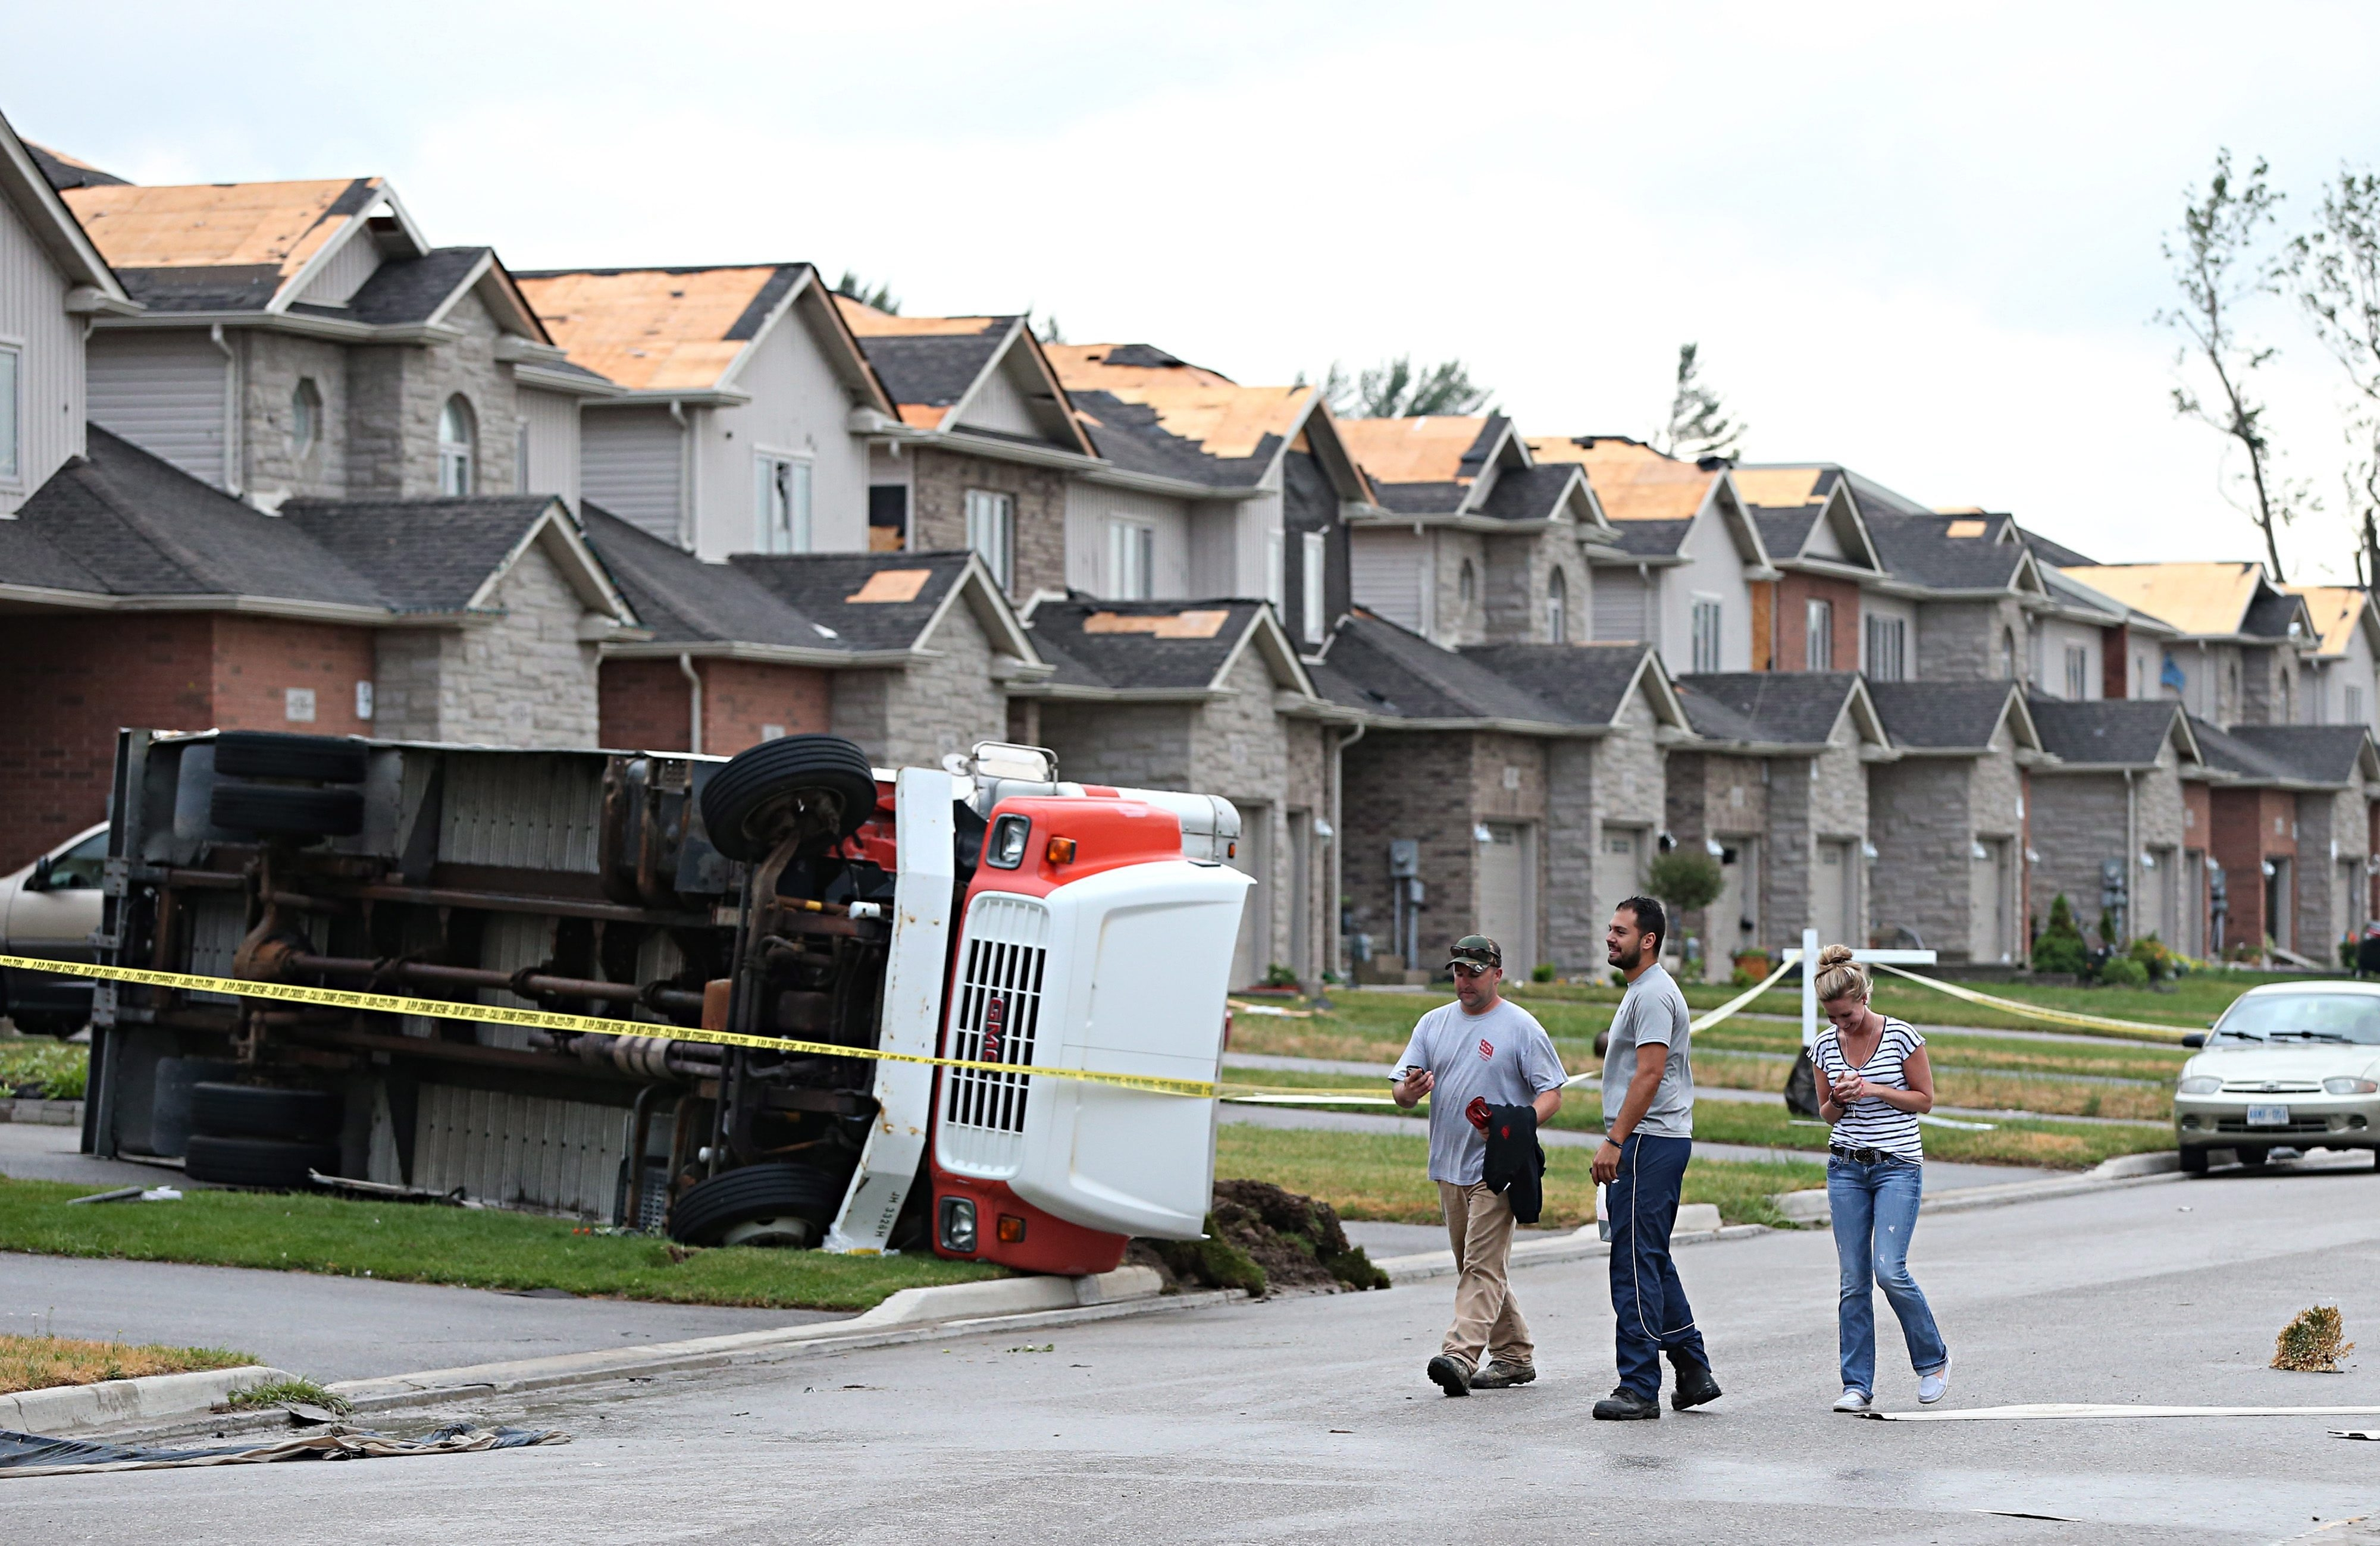 Residents observe the damage on a street following a storm in Angus, Ontario, on Tuesday, June 17, 2014. Provincial police say there are reports of some minor injuries after severe weather ripped through the central Ontario community. (AP Photo/The Canadian Press, Peter Turchet)